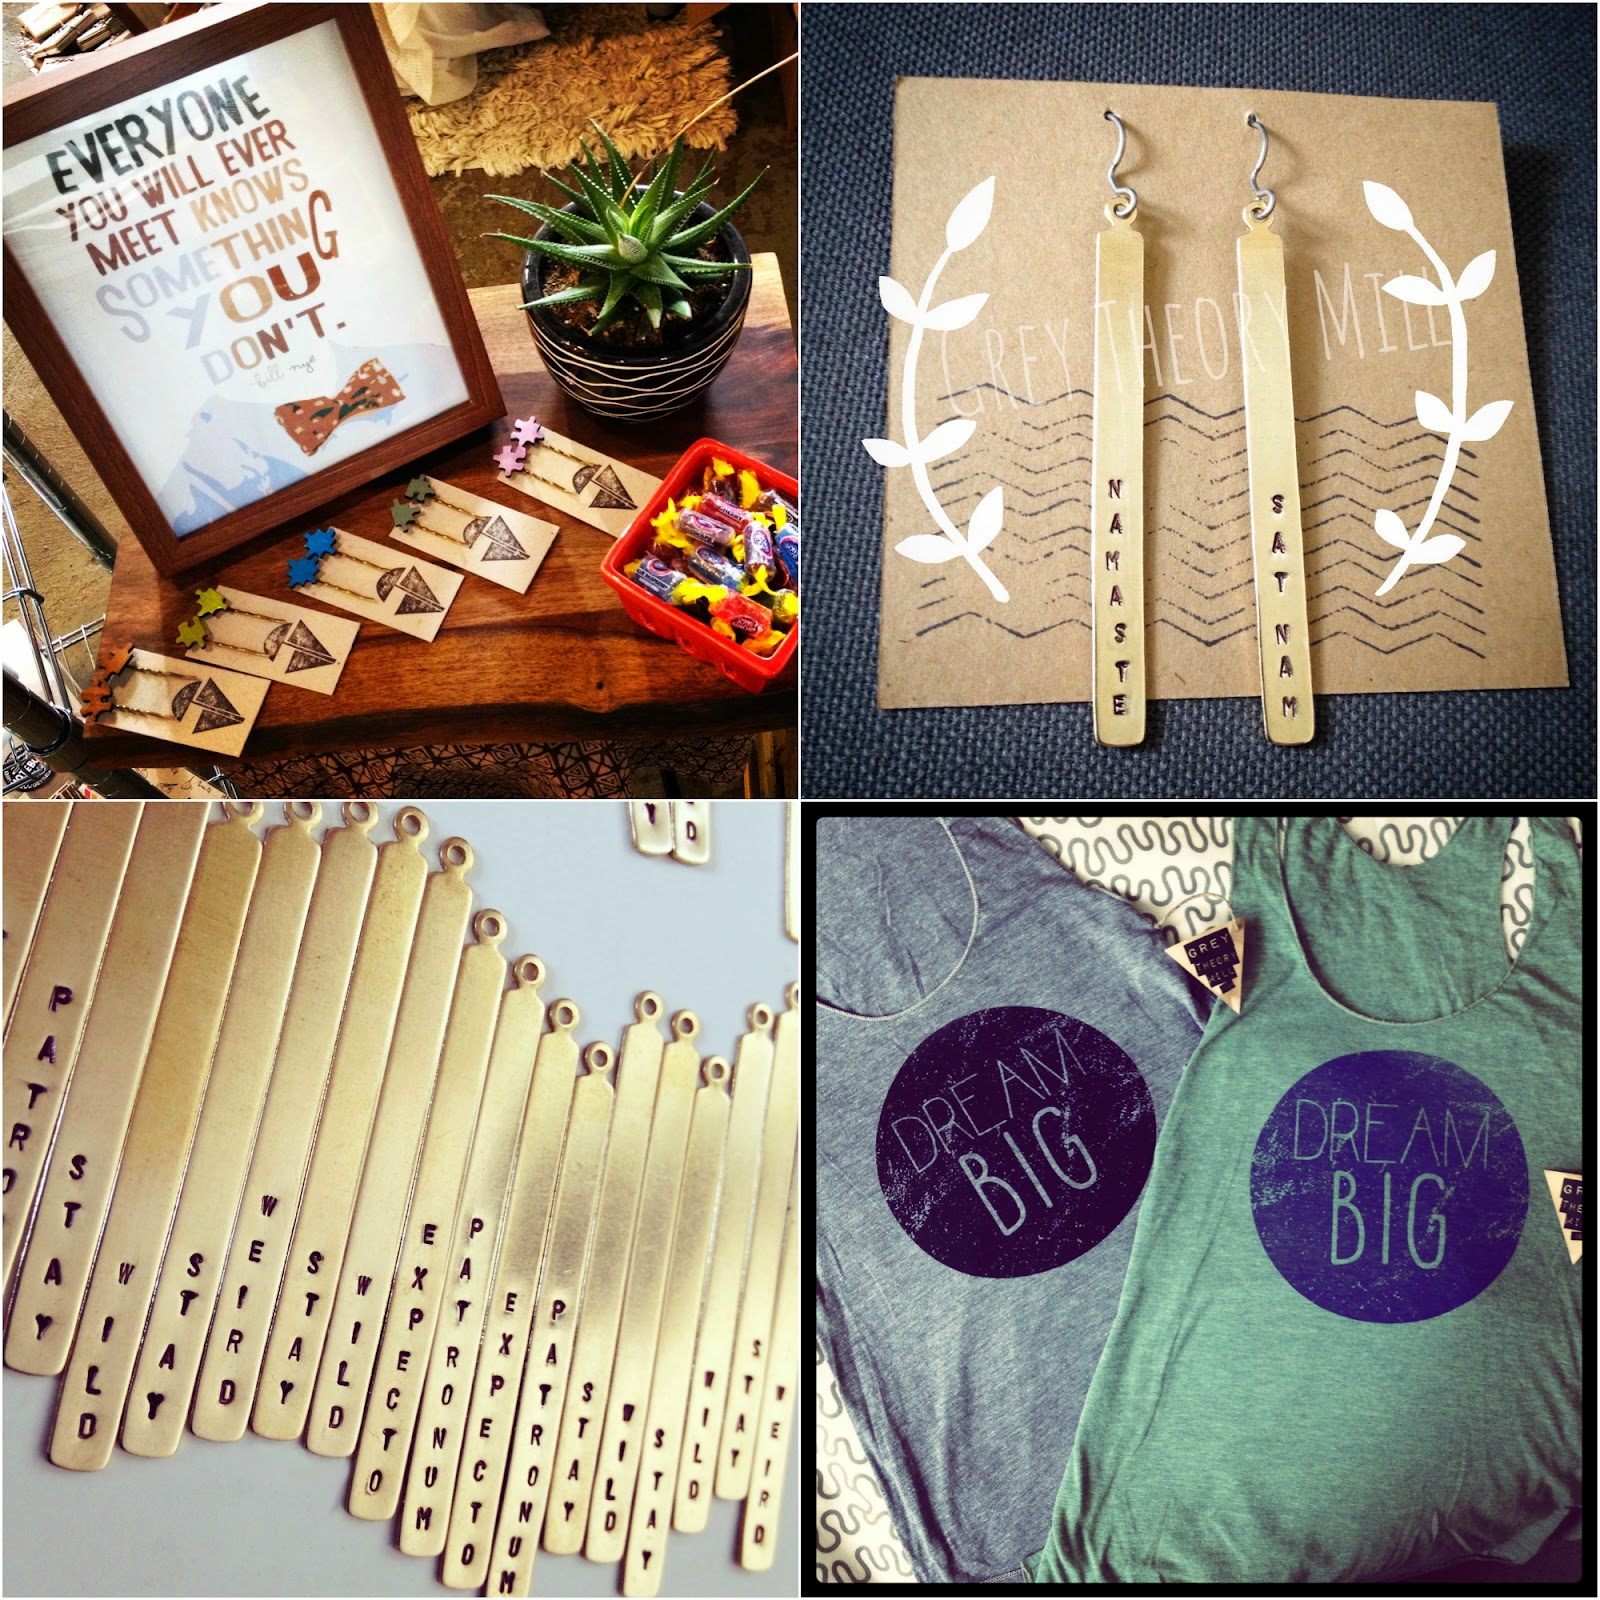 Grey Theory Mill feature & GIVEAWAY! at Shop Small Saturday Showcase on Diane's Vintage Zest!